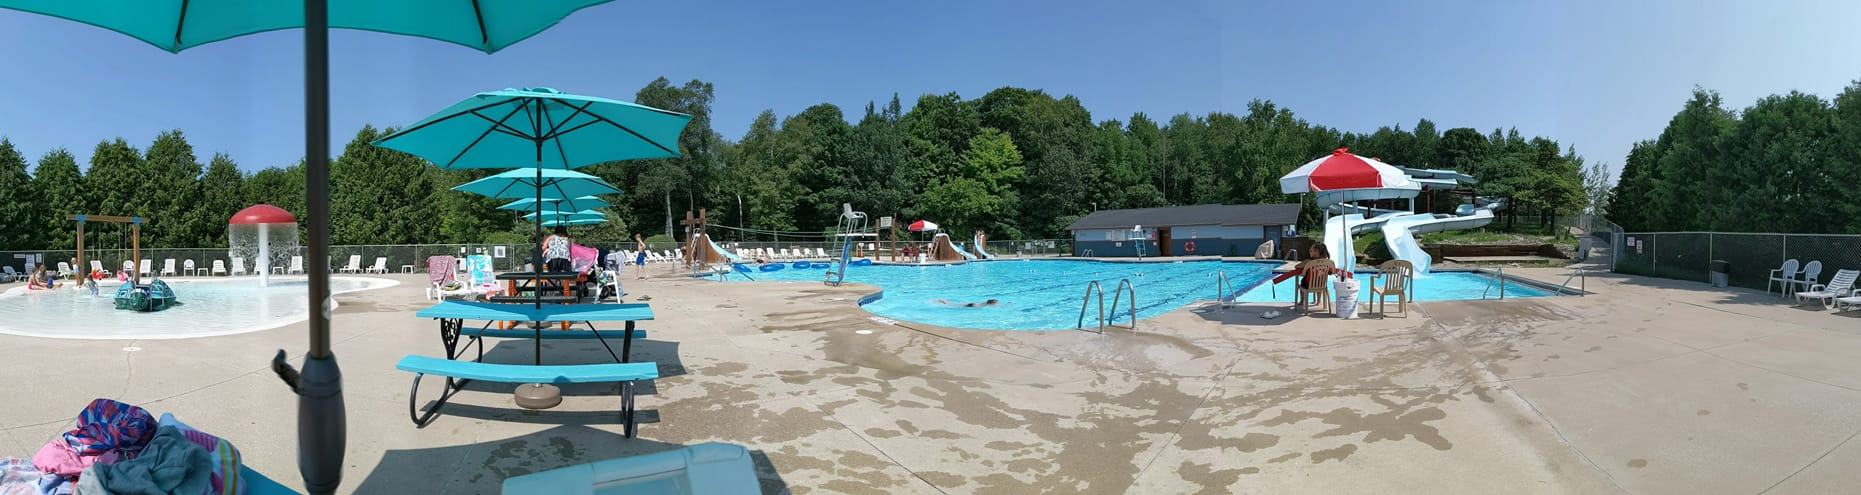 Panorama of Activity Pool 2019